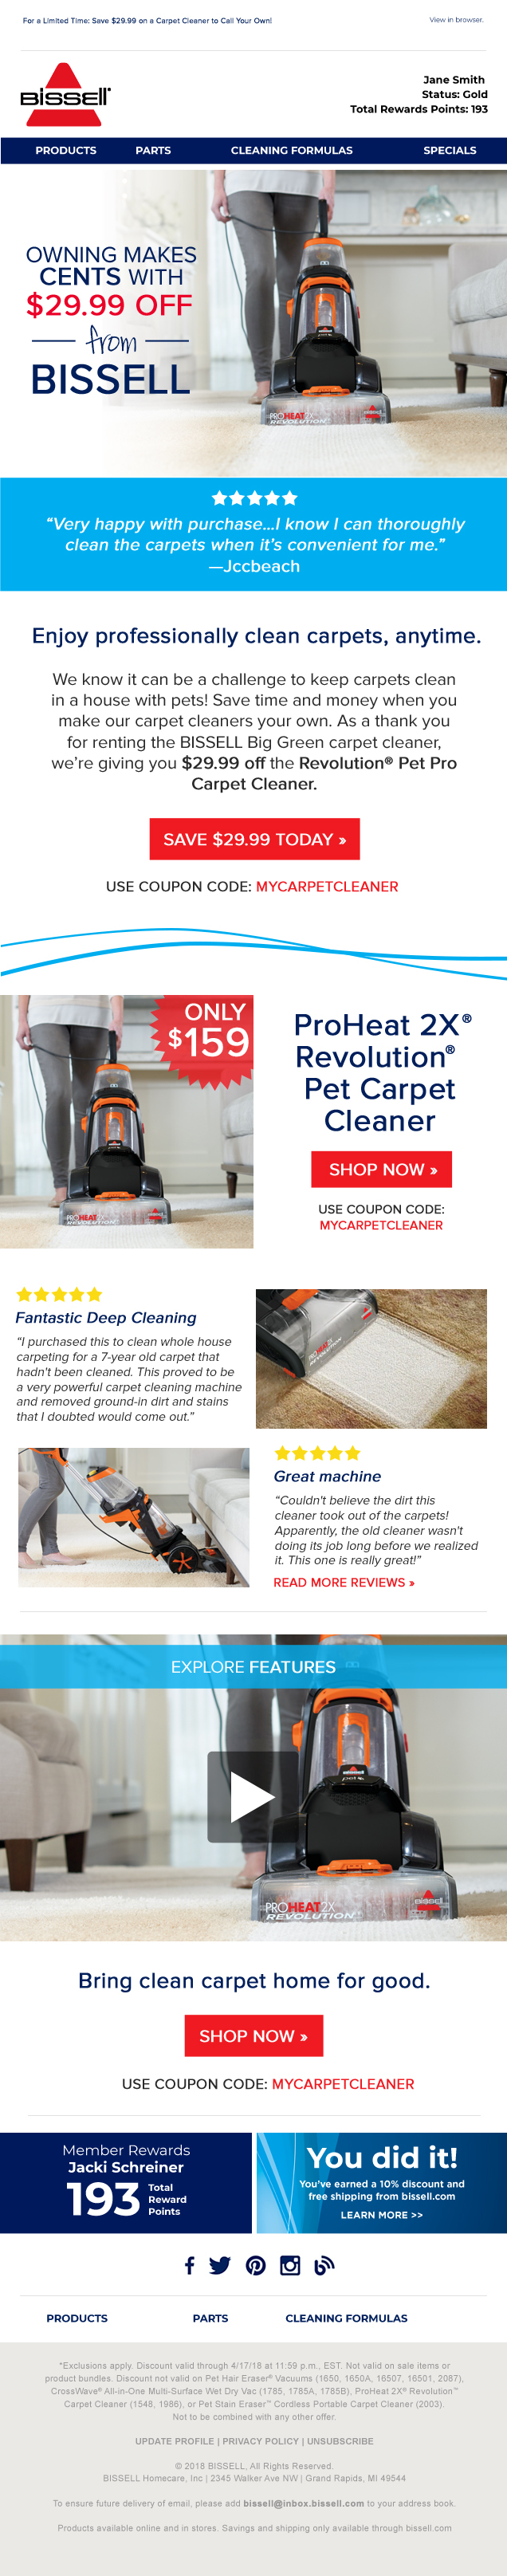 BISSELL Pet Carpet Cleaner Responsive Email Design